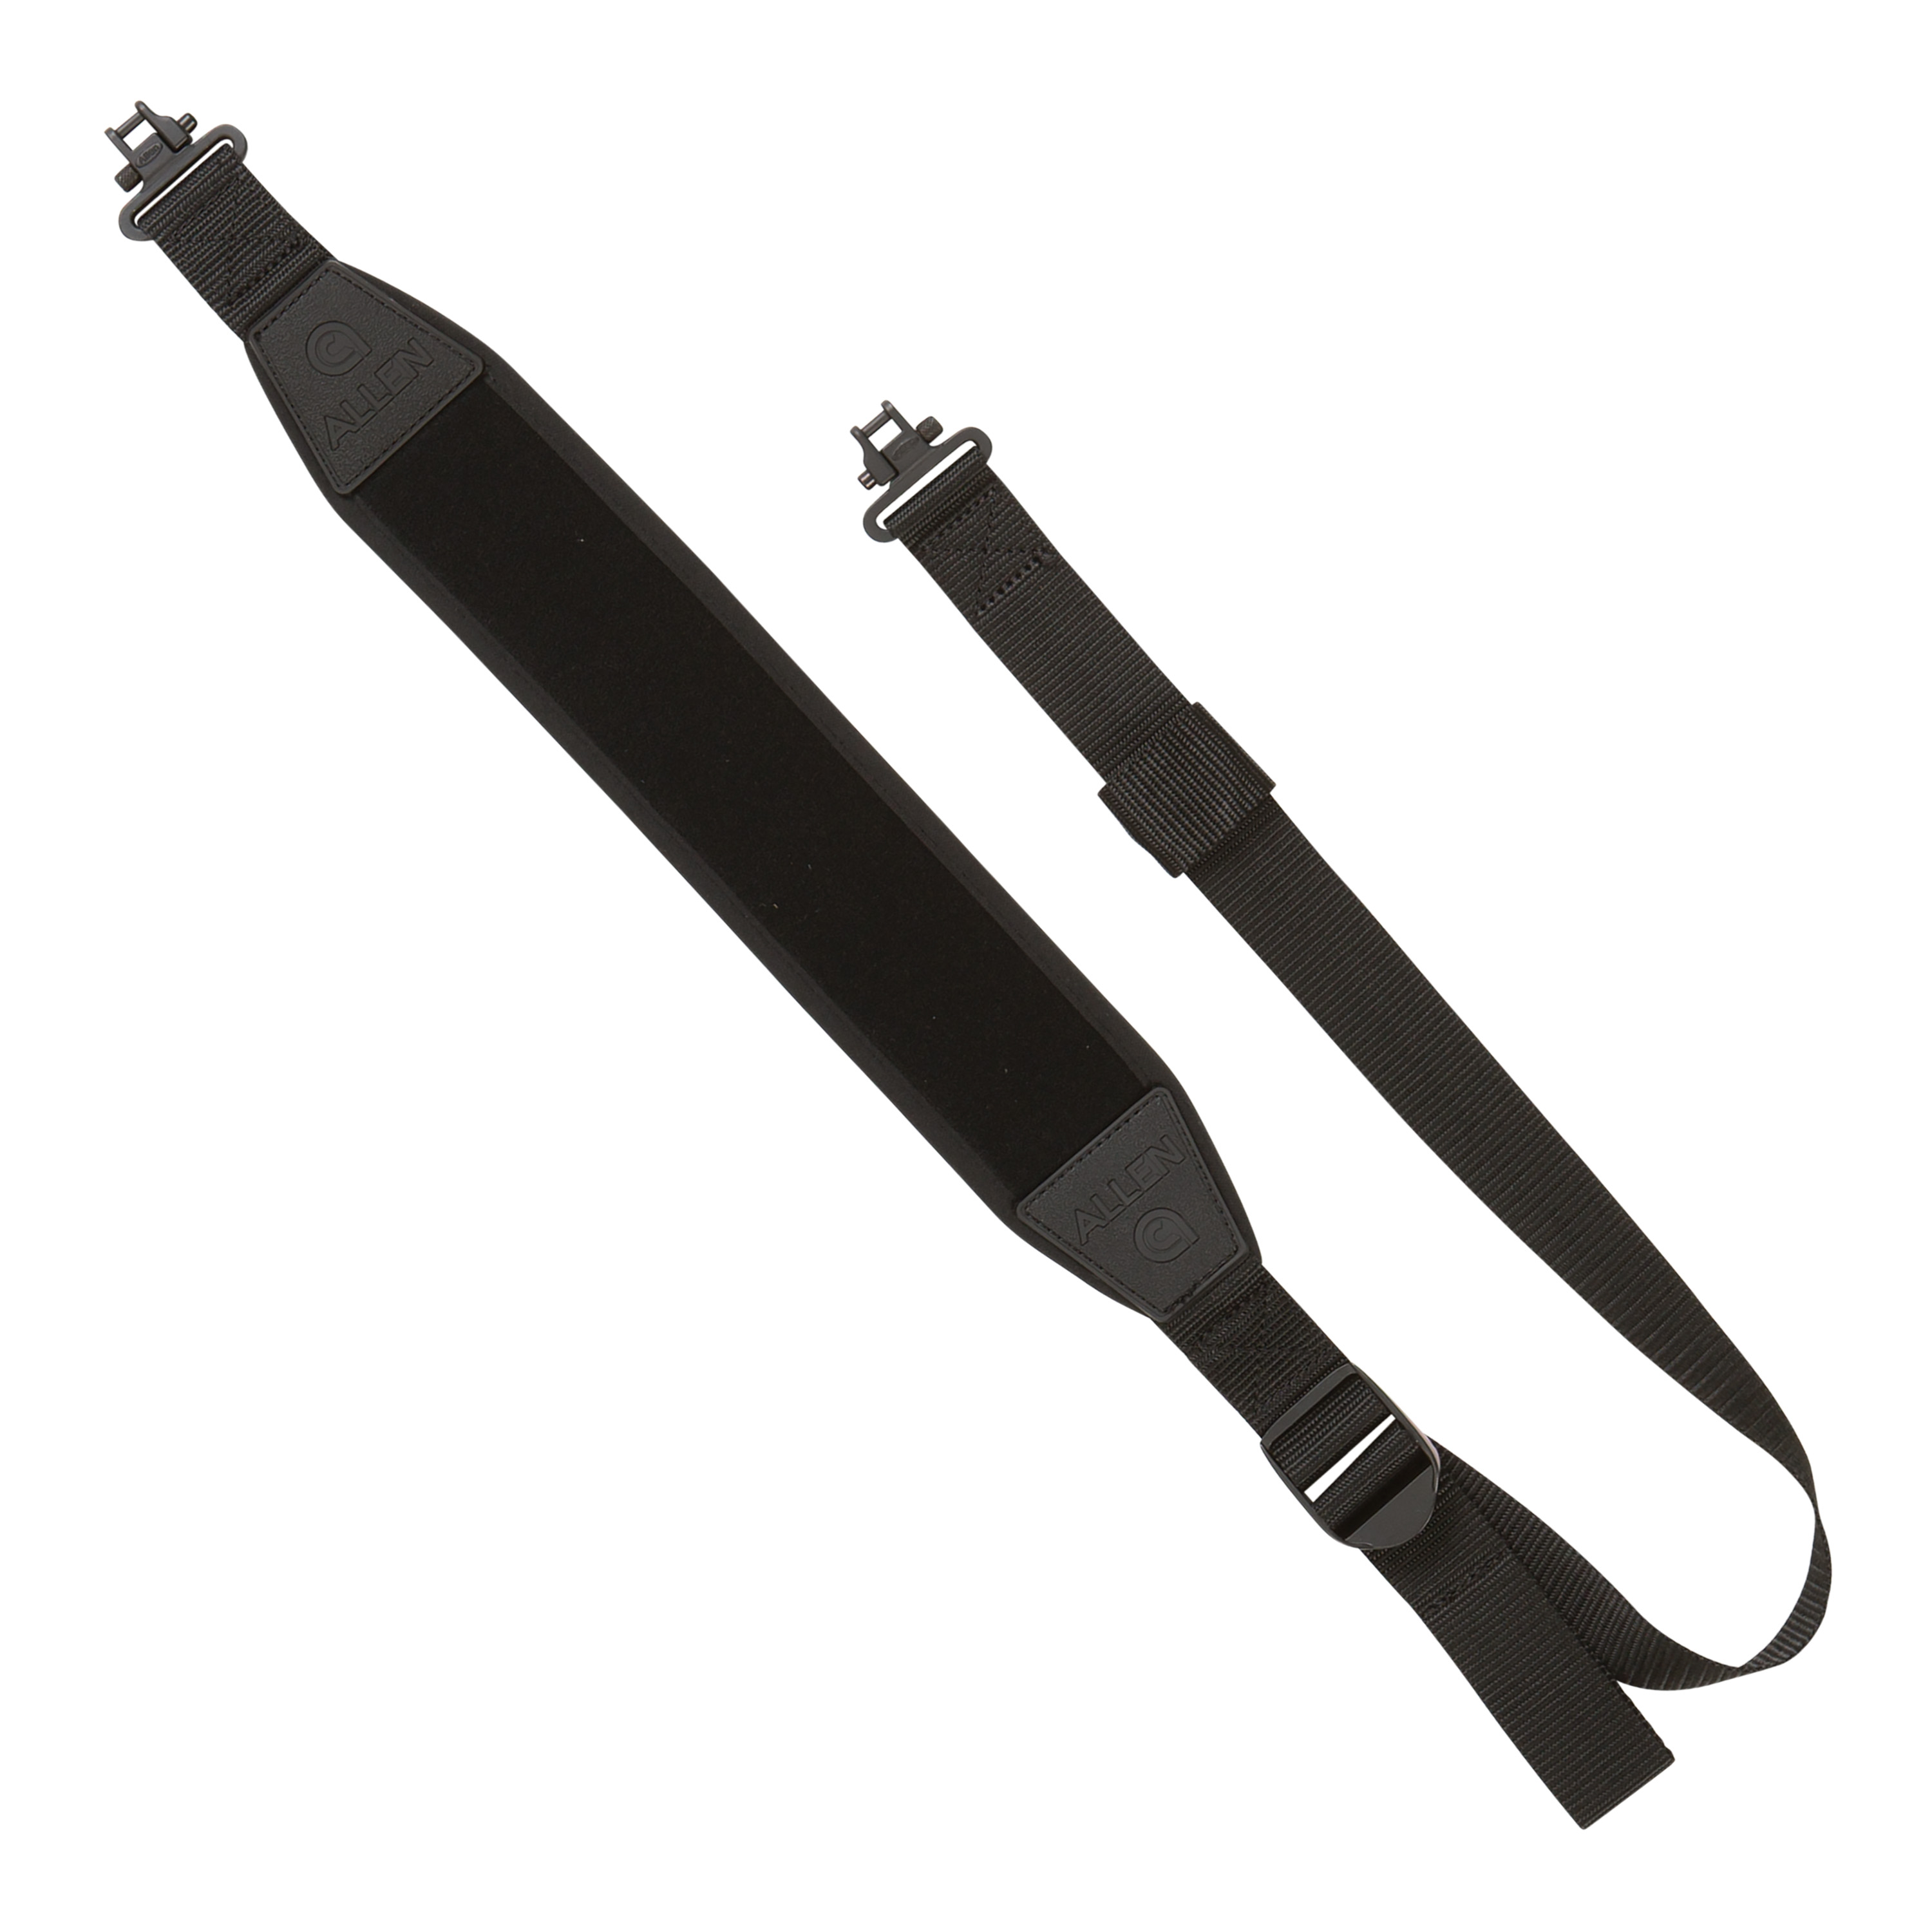 Cascade Neoprene Gun Sling with Swivels by Allen Company